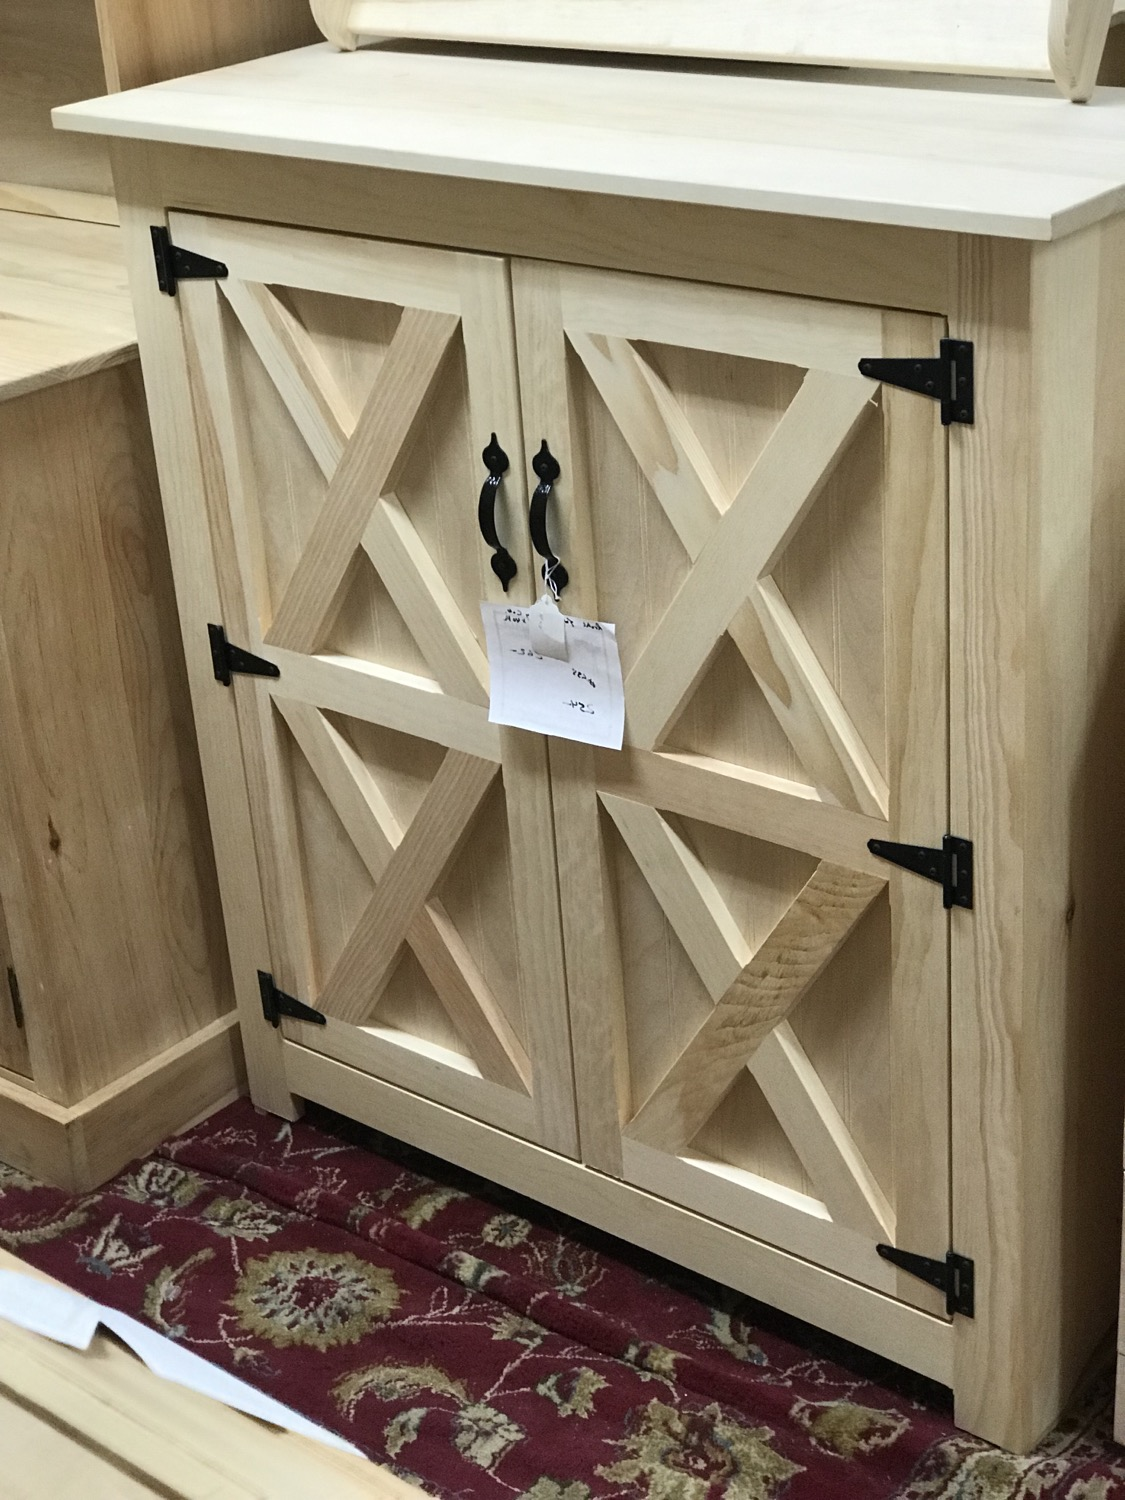 2 Door Jelly Cabinet $254